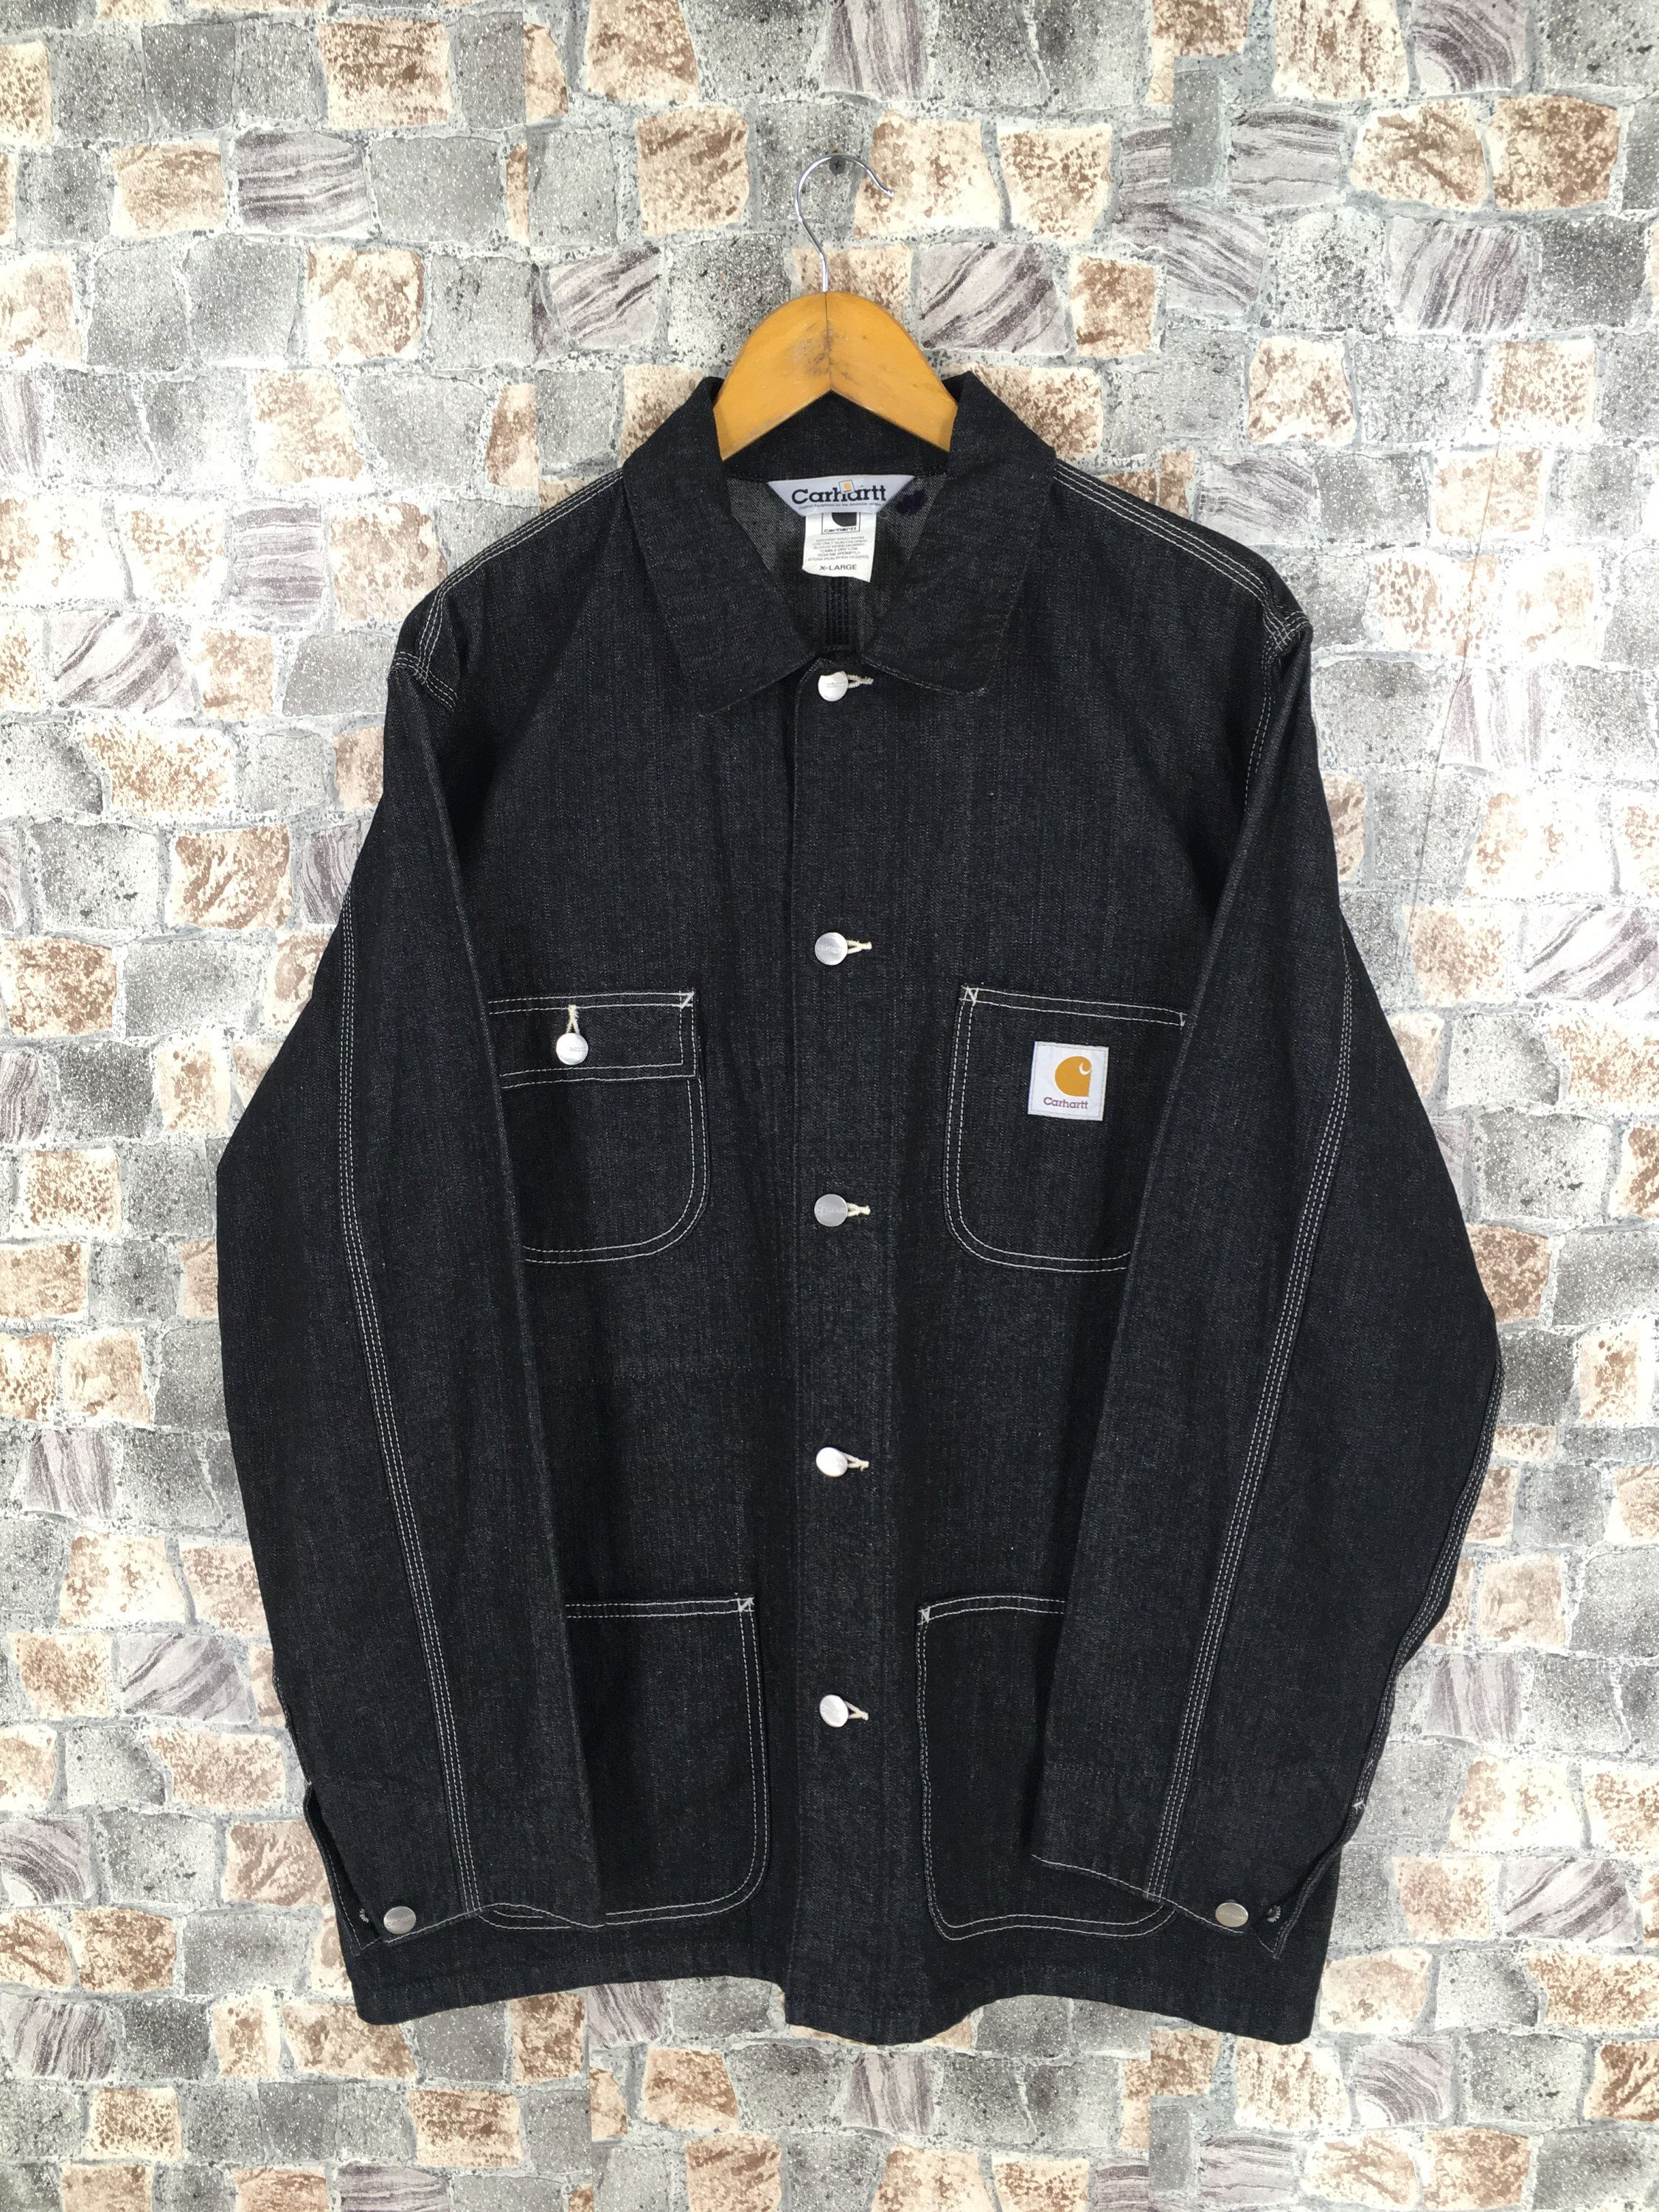 Excited To Share This Item From My Etsy Shop Vintage Carhartt Denim Jeans Jacket Black Xlarge Workwear Fo Vintage Denim Jacket Denim Jacket Men Safari Jacket [ 3000 x 2250 Pixel ]